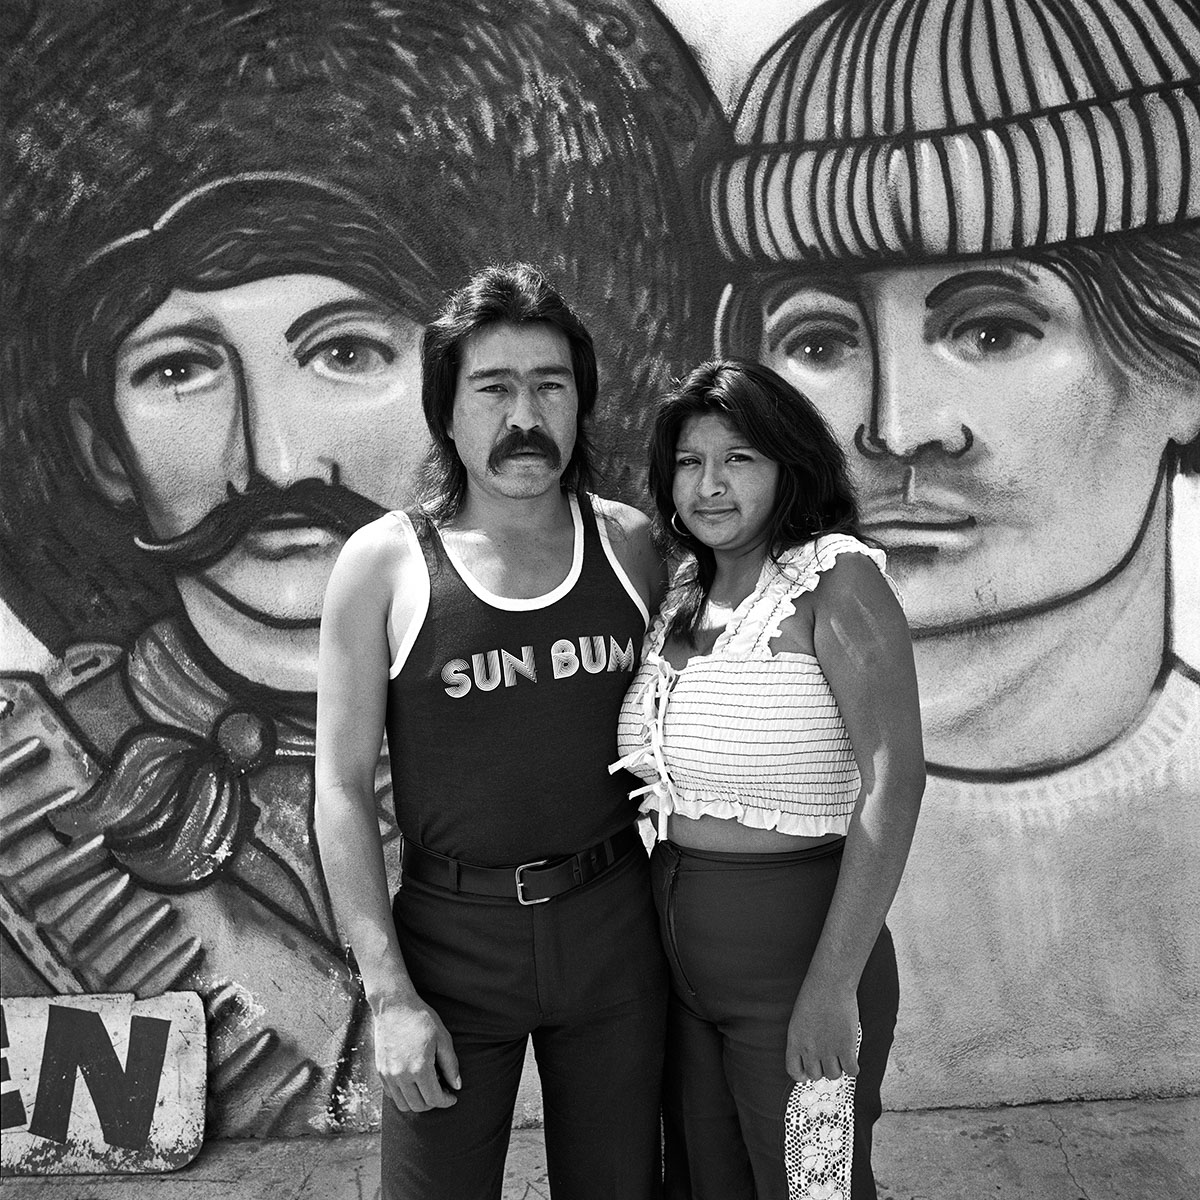 Sun Bum, East Los Angeles, 1978